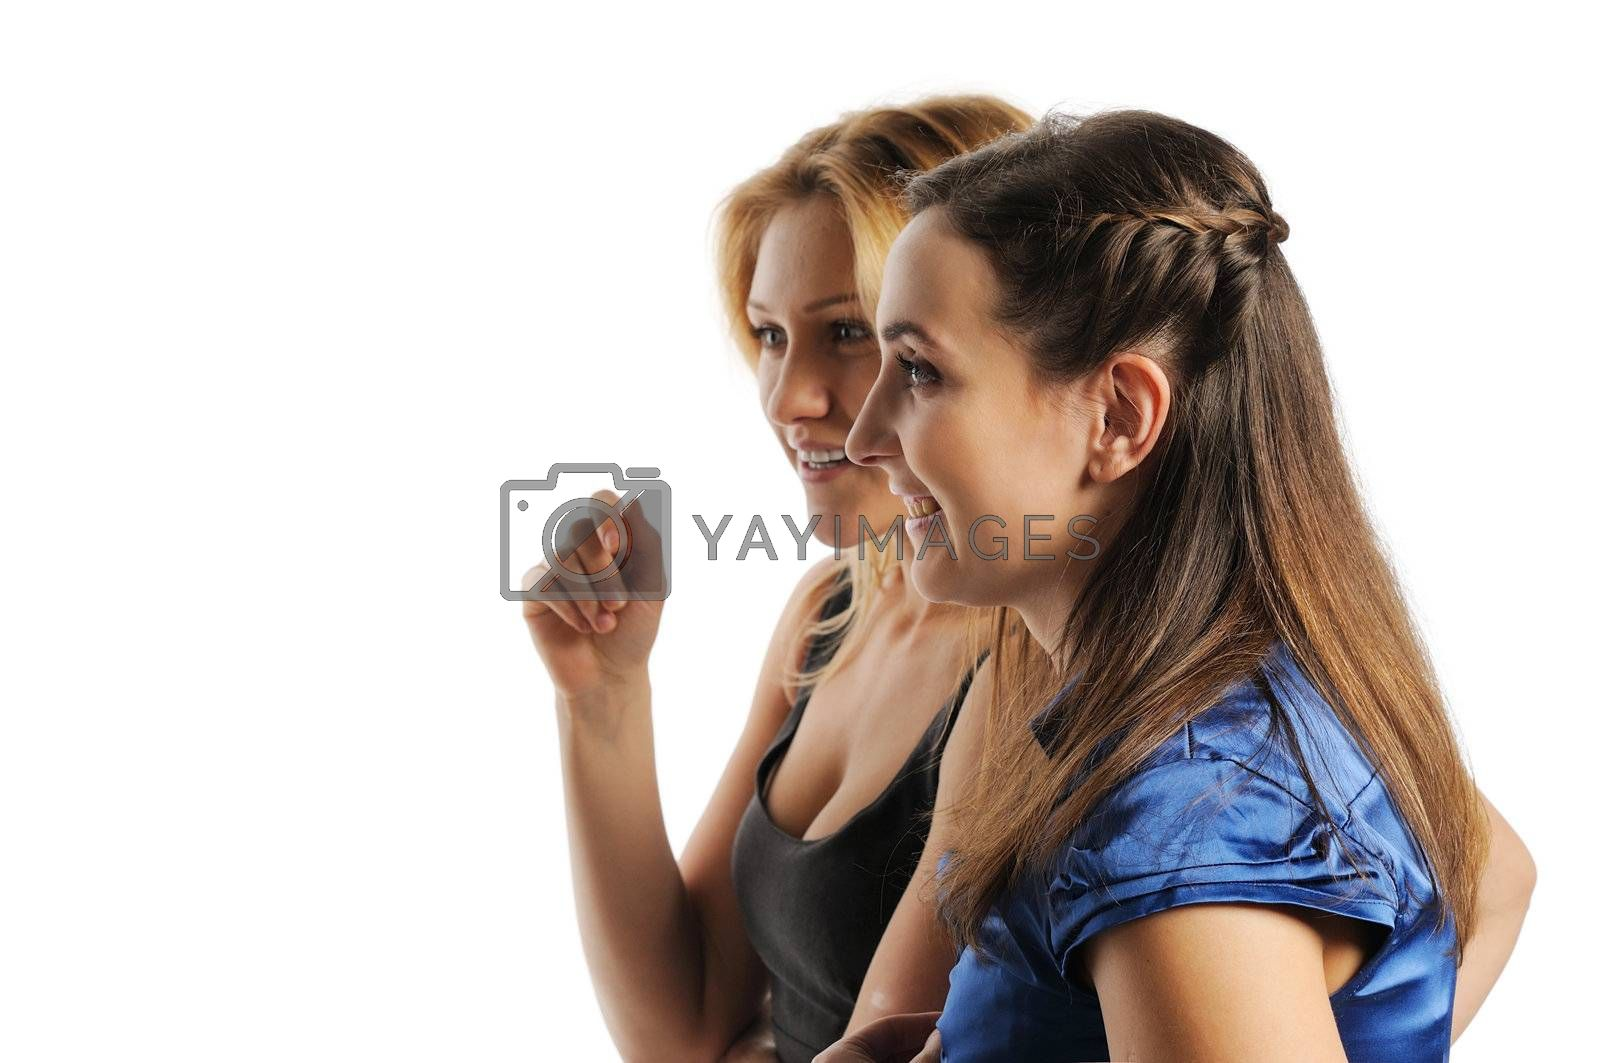 Two young attractive women discussing, look to the left. Isolated on white.